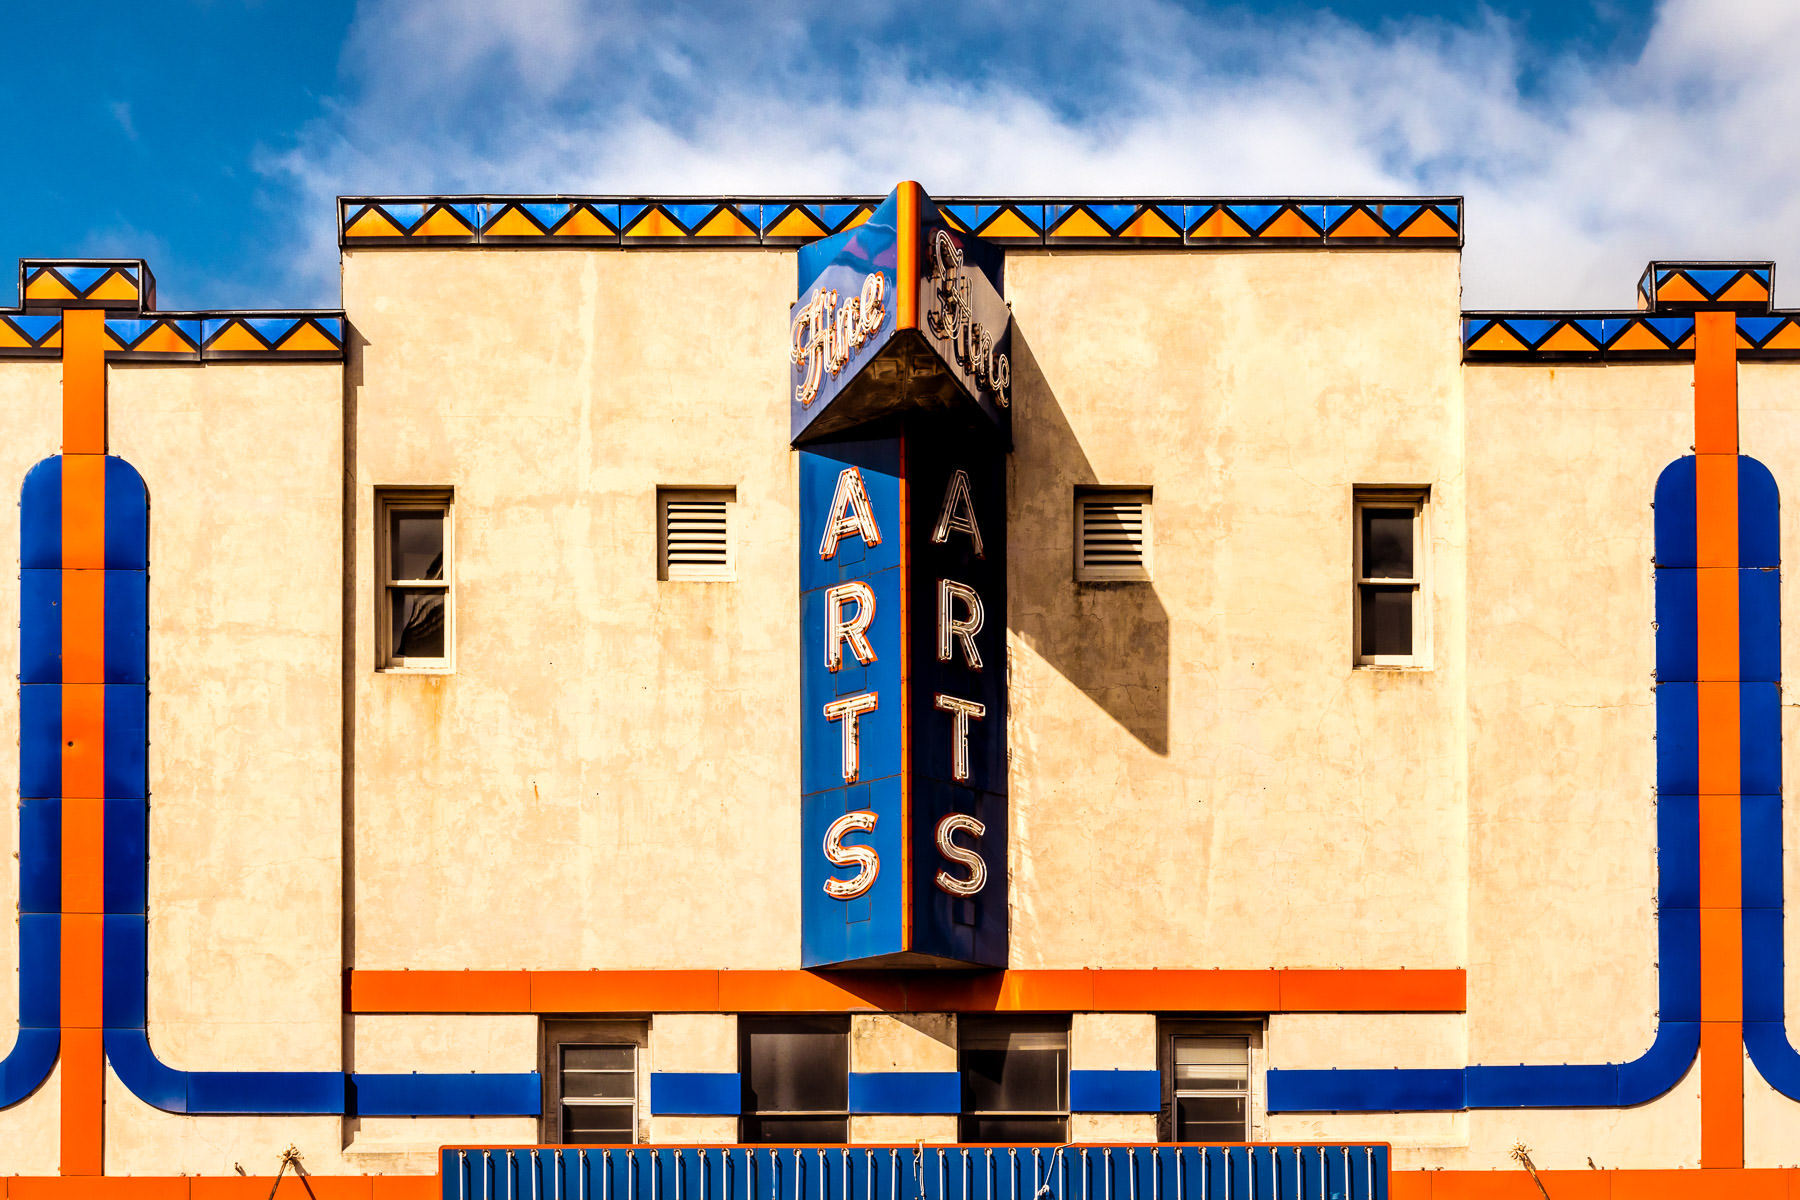 The sign and facade of the Fine Arts Theatre in Downtown Denton, Texas.